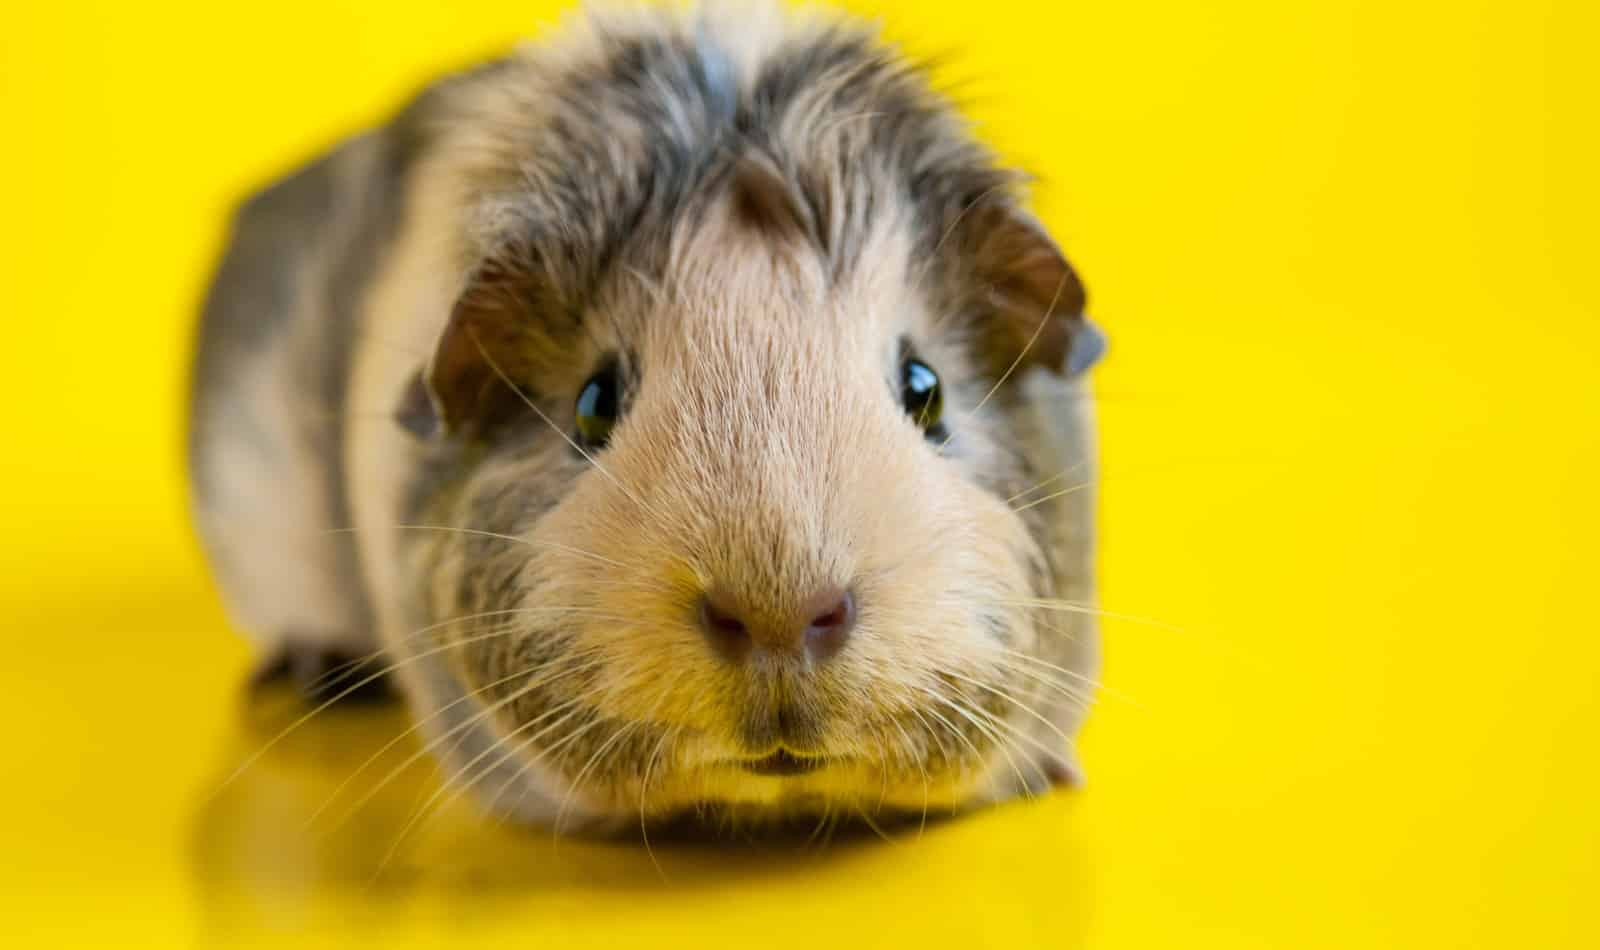 Looking for some really terrific guinea pig names starting with A? We've got 100 of them for you right here! Check them out!